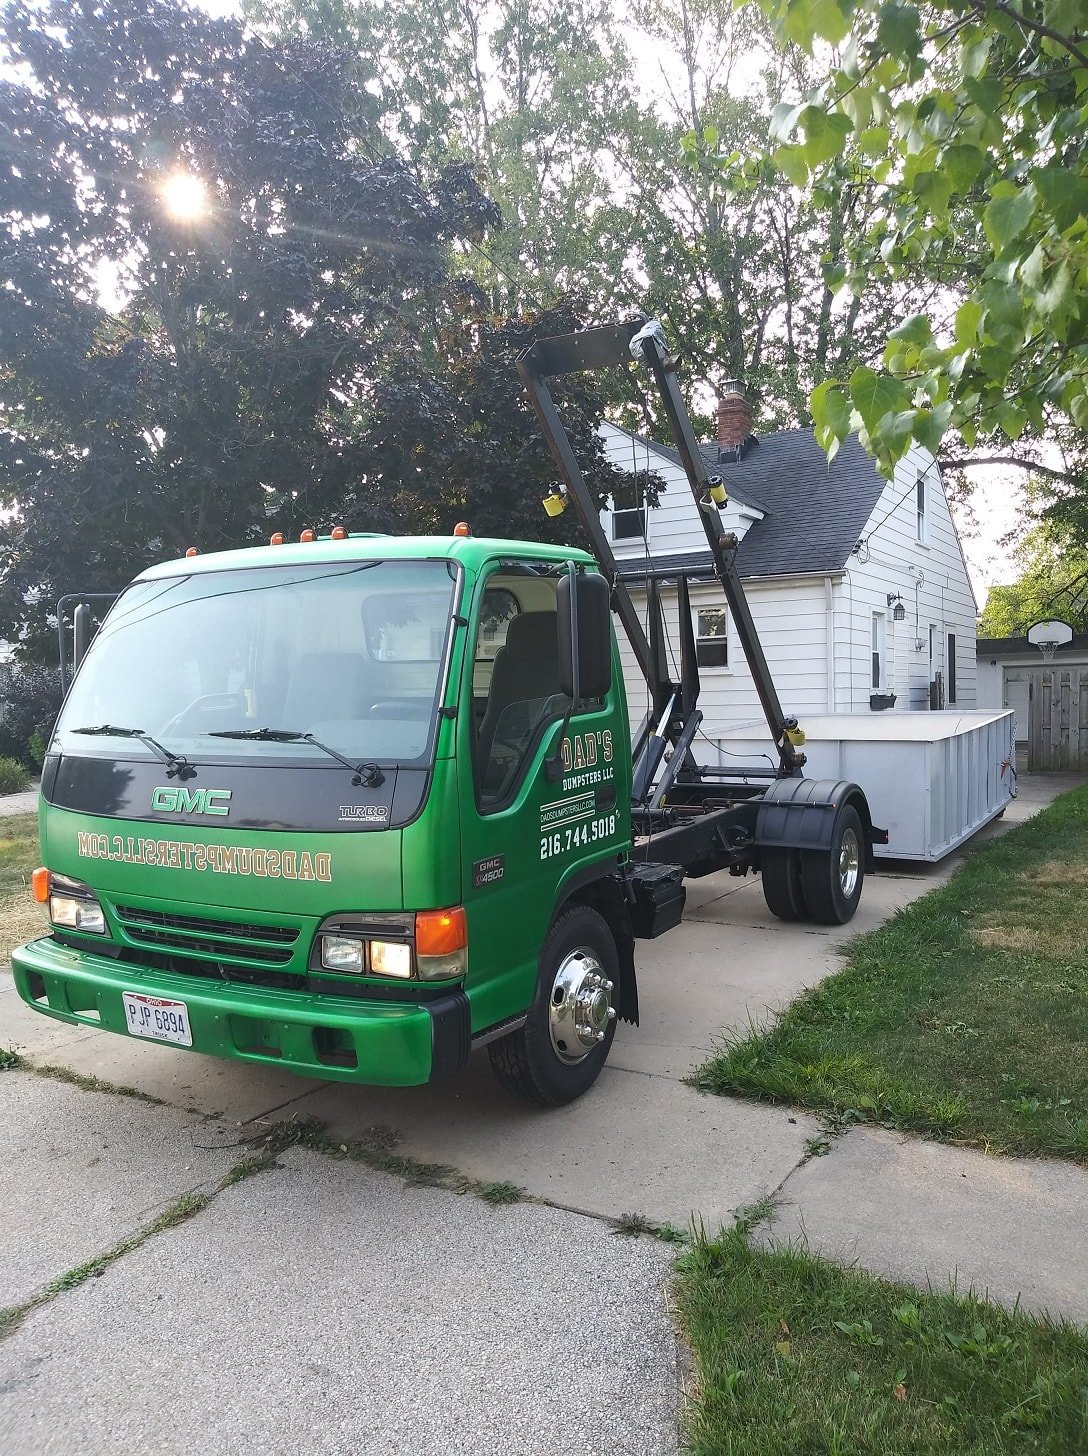 Dad's Dumpsters LLc roll-off truck, 10 yard dumpster rental